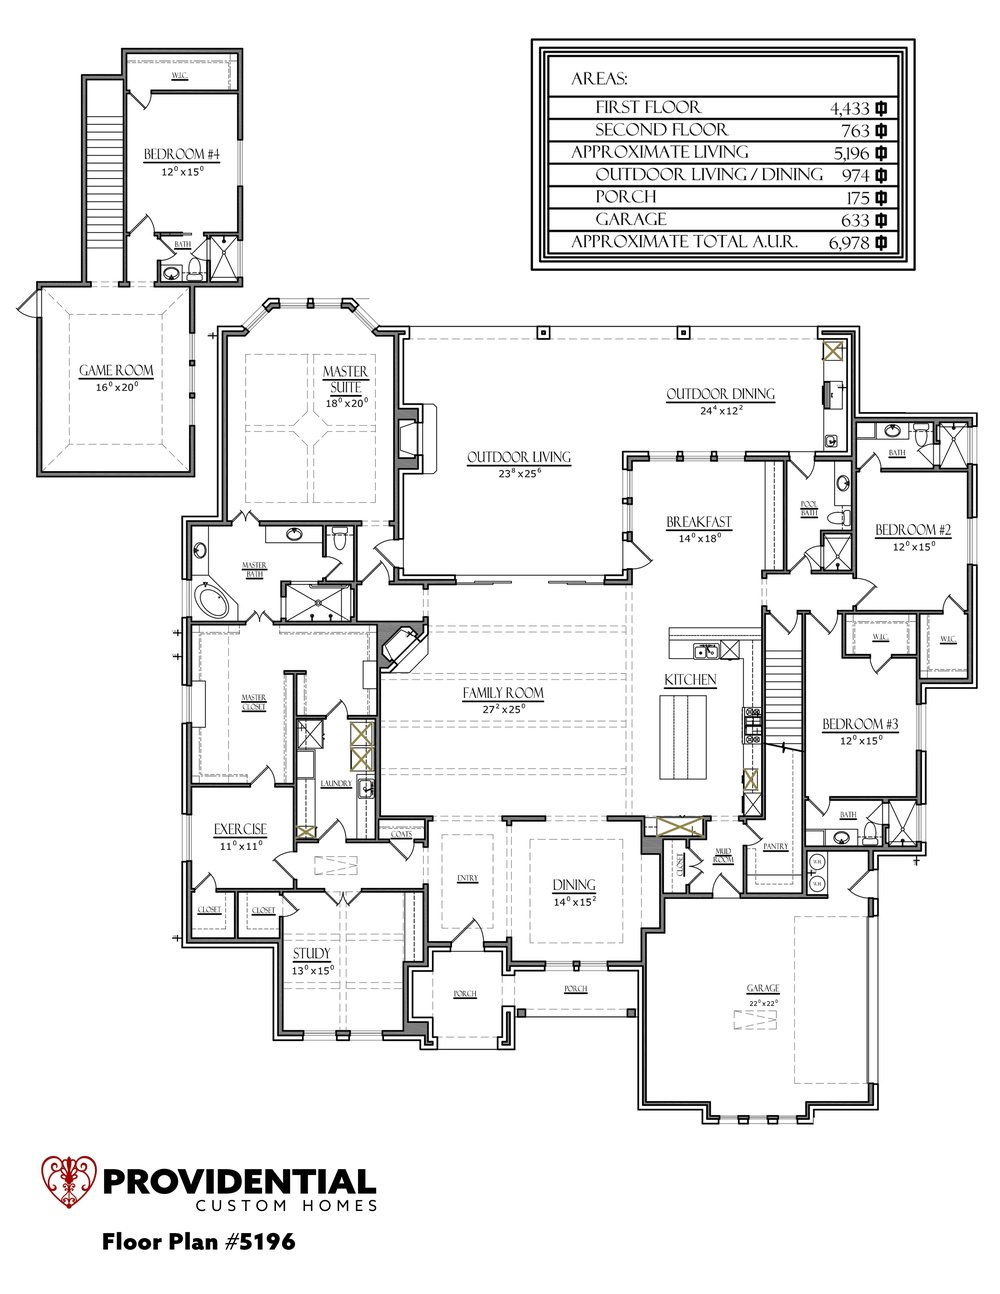 The FLOOR PLAN #5196.jpg